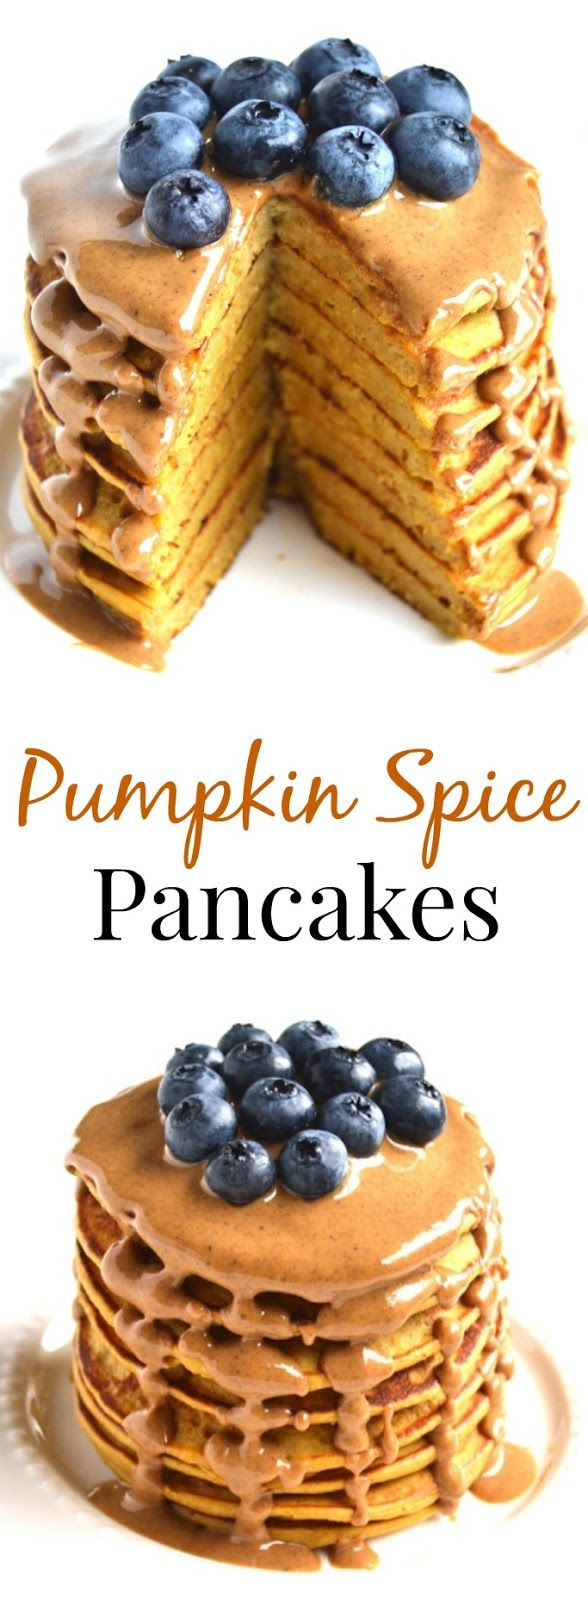 The perfect weekend breakfast has never been easier with these Pumpkin Spice Pancakes that are made healthy with real pumpkin, Greek yogurt and pumpkin spice peanut butter! Gluten-free and healthy too! www.nutritionistreviews.com